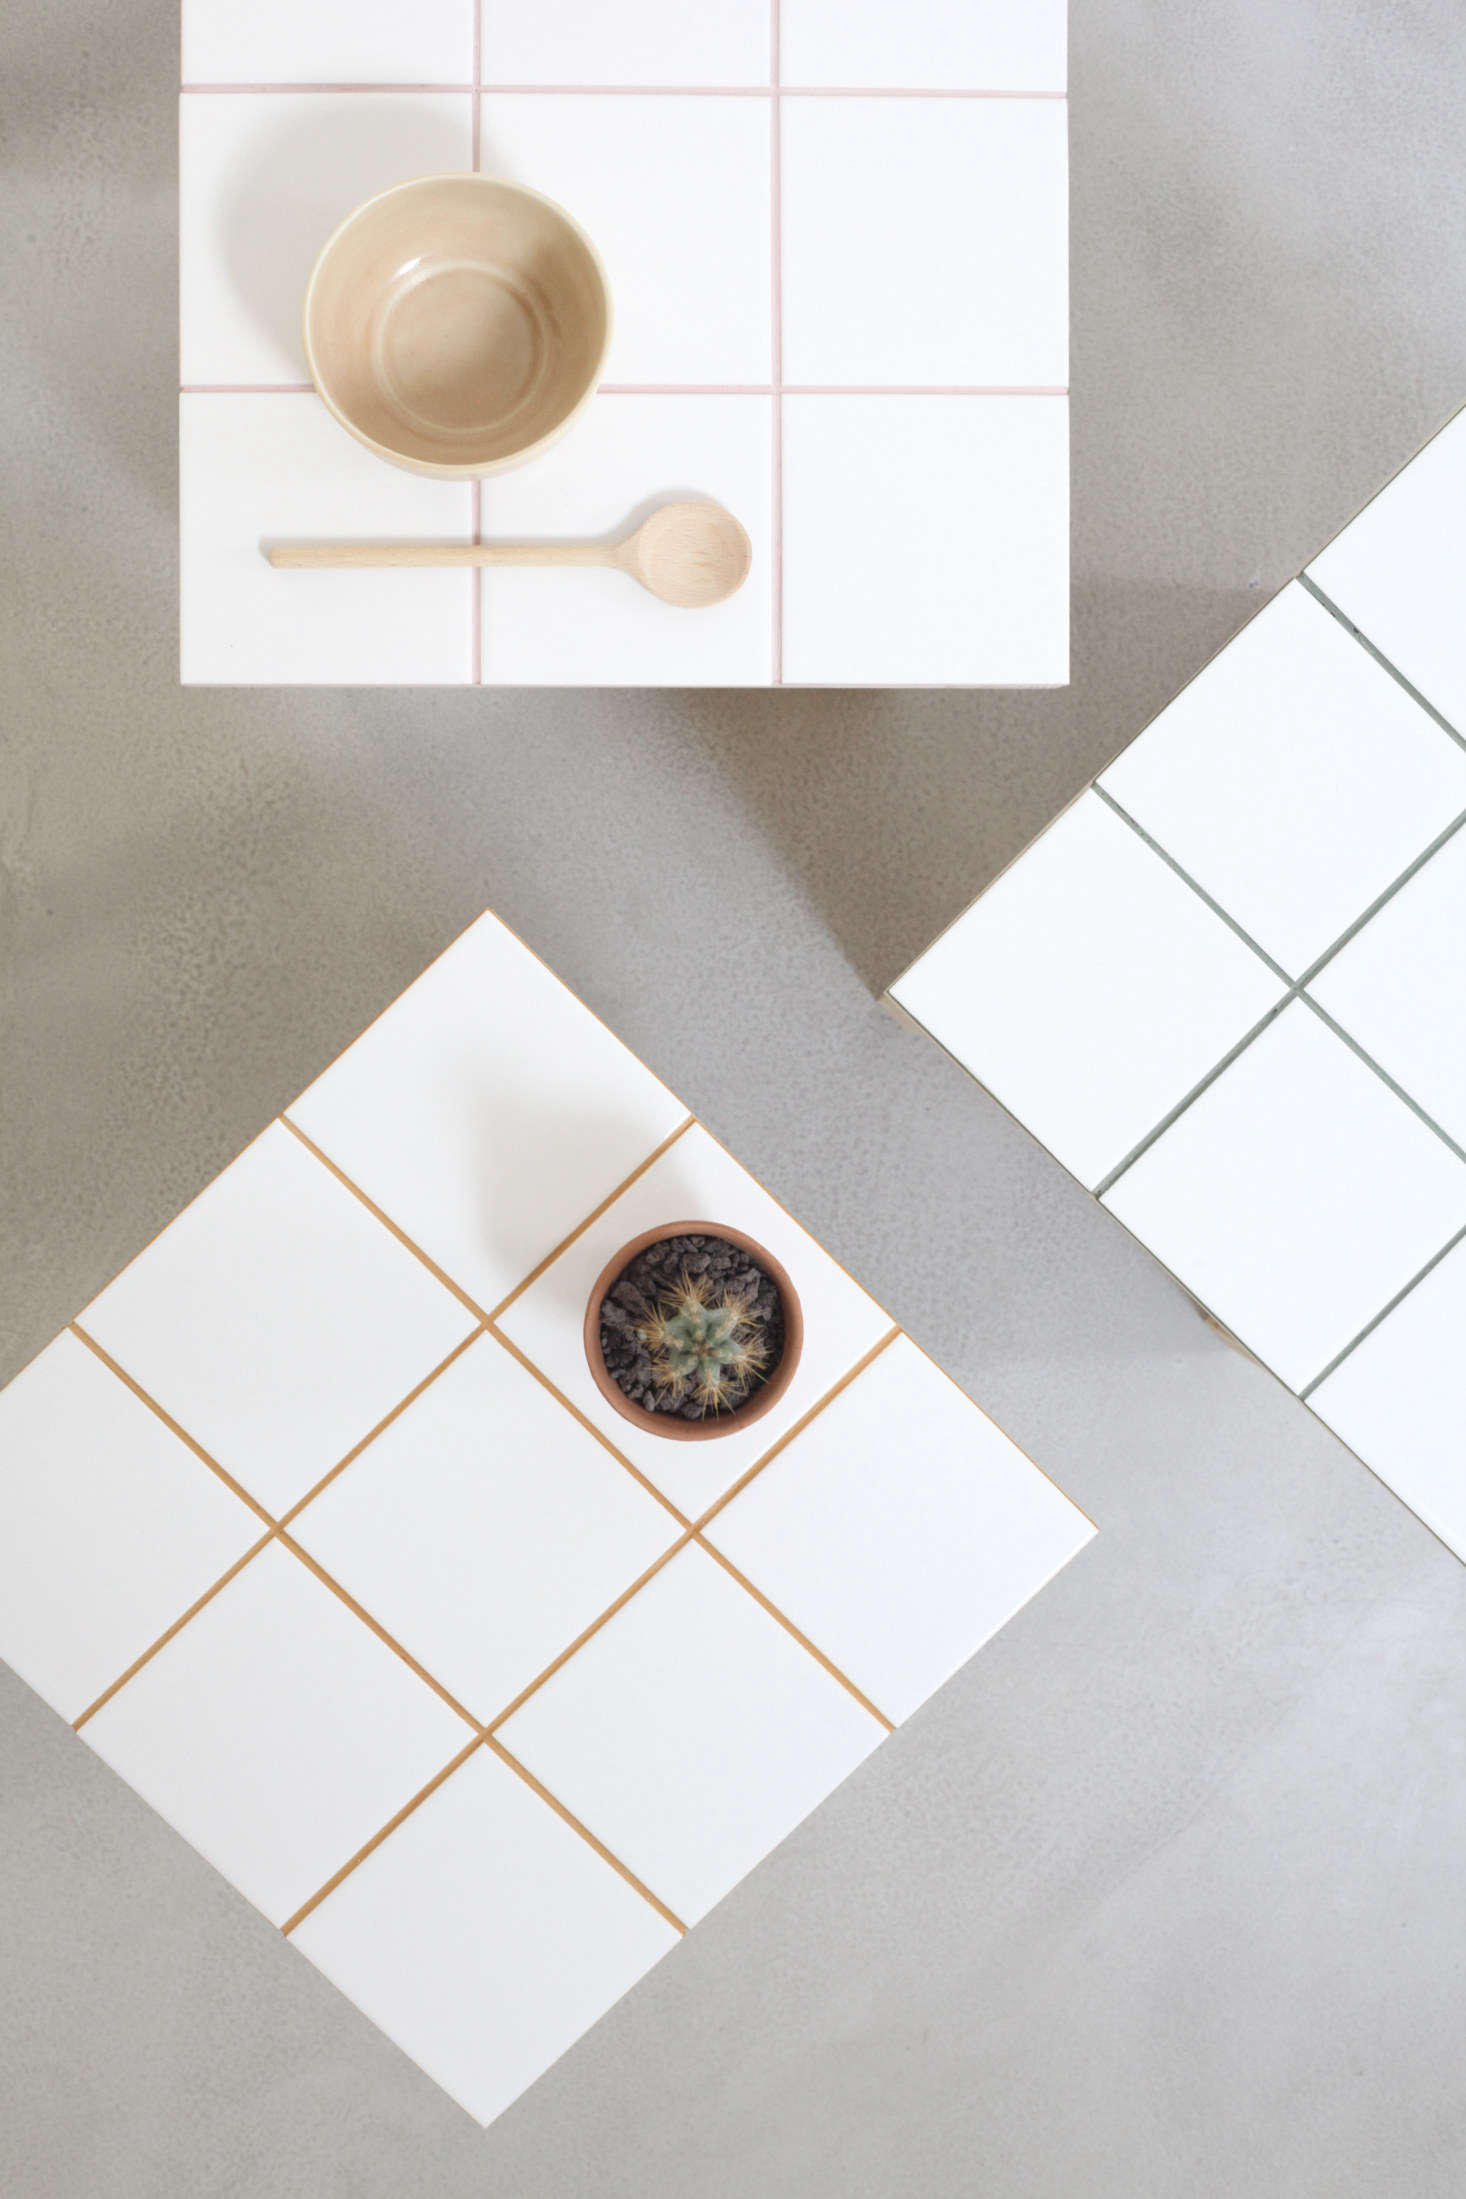 Hélène and Julien use colored pigments to create pale pink, curry yellow, and olive green grout.